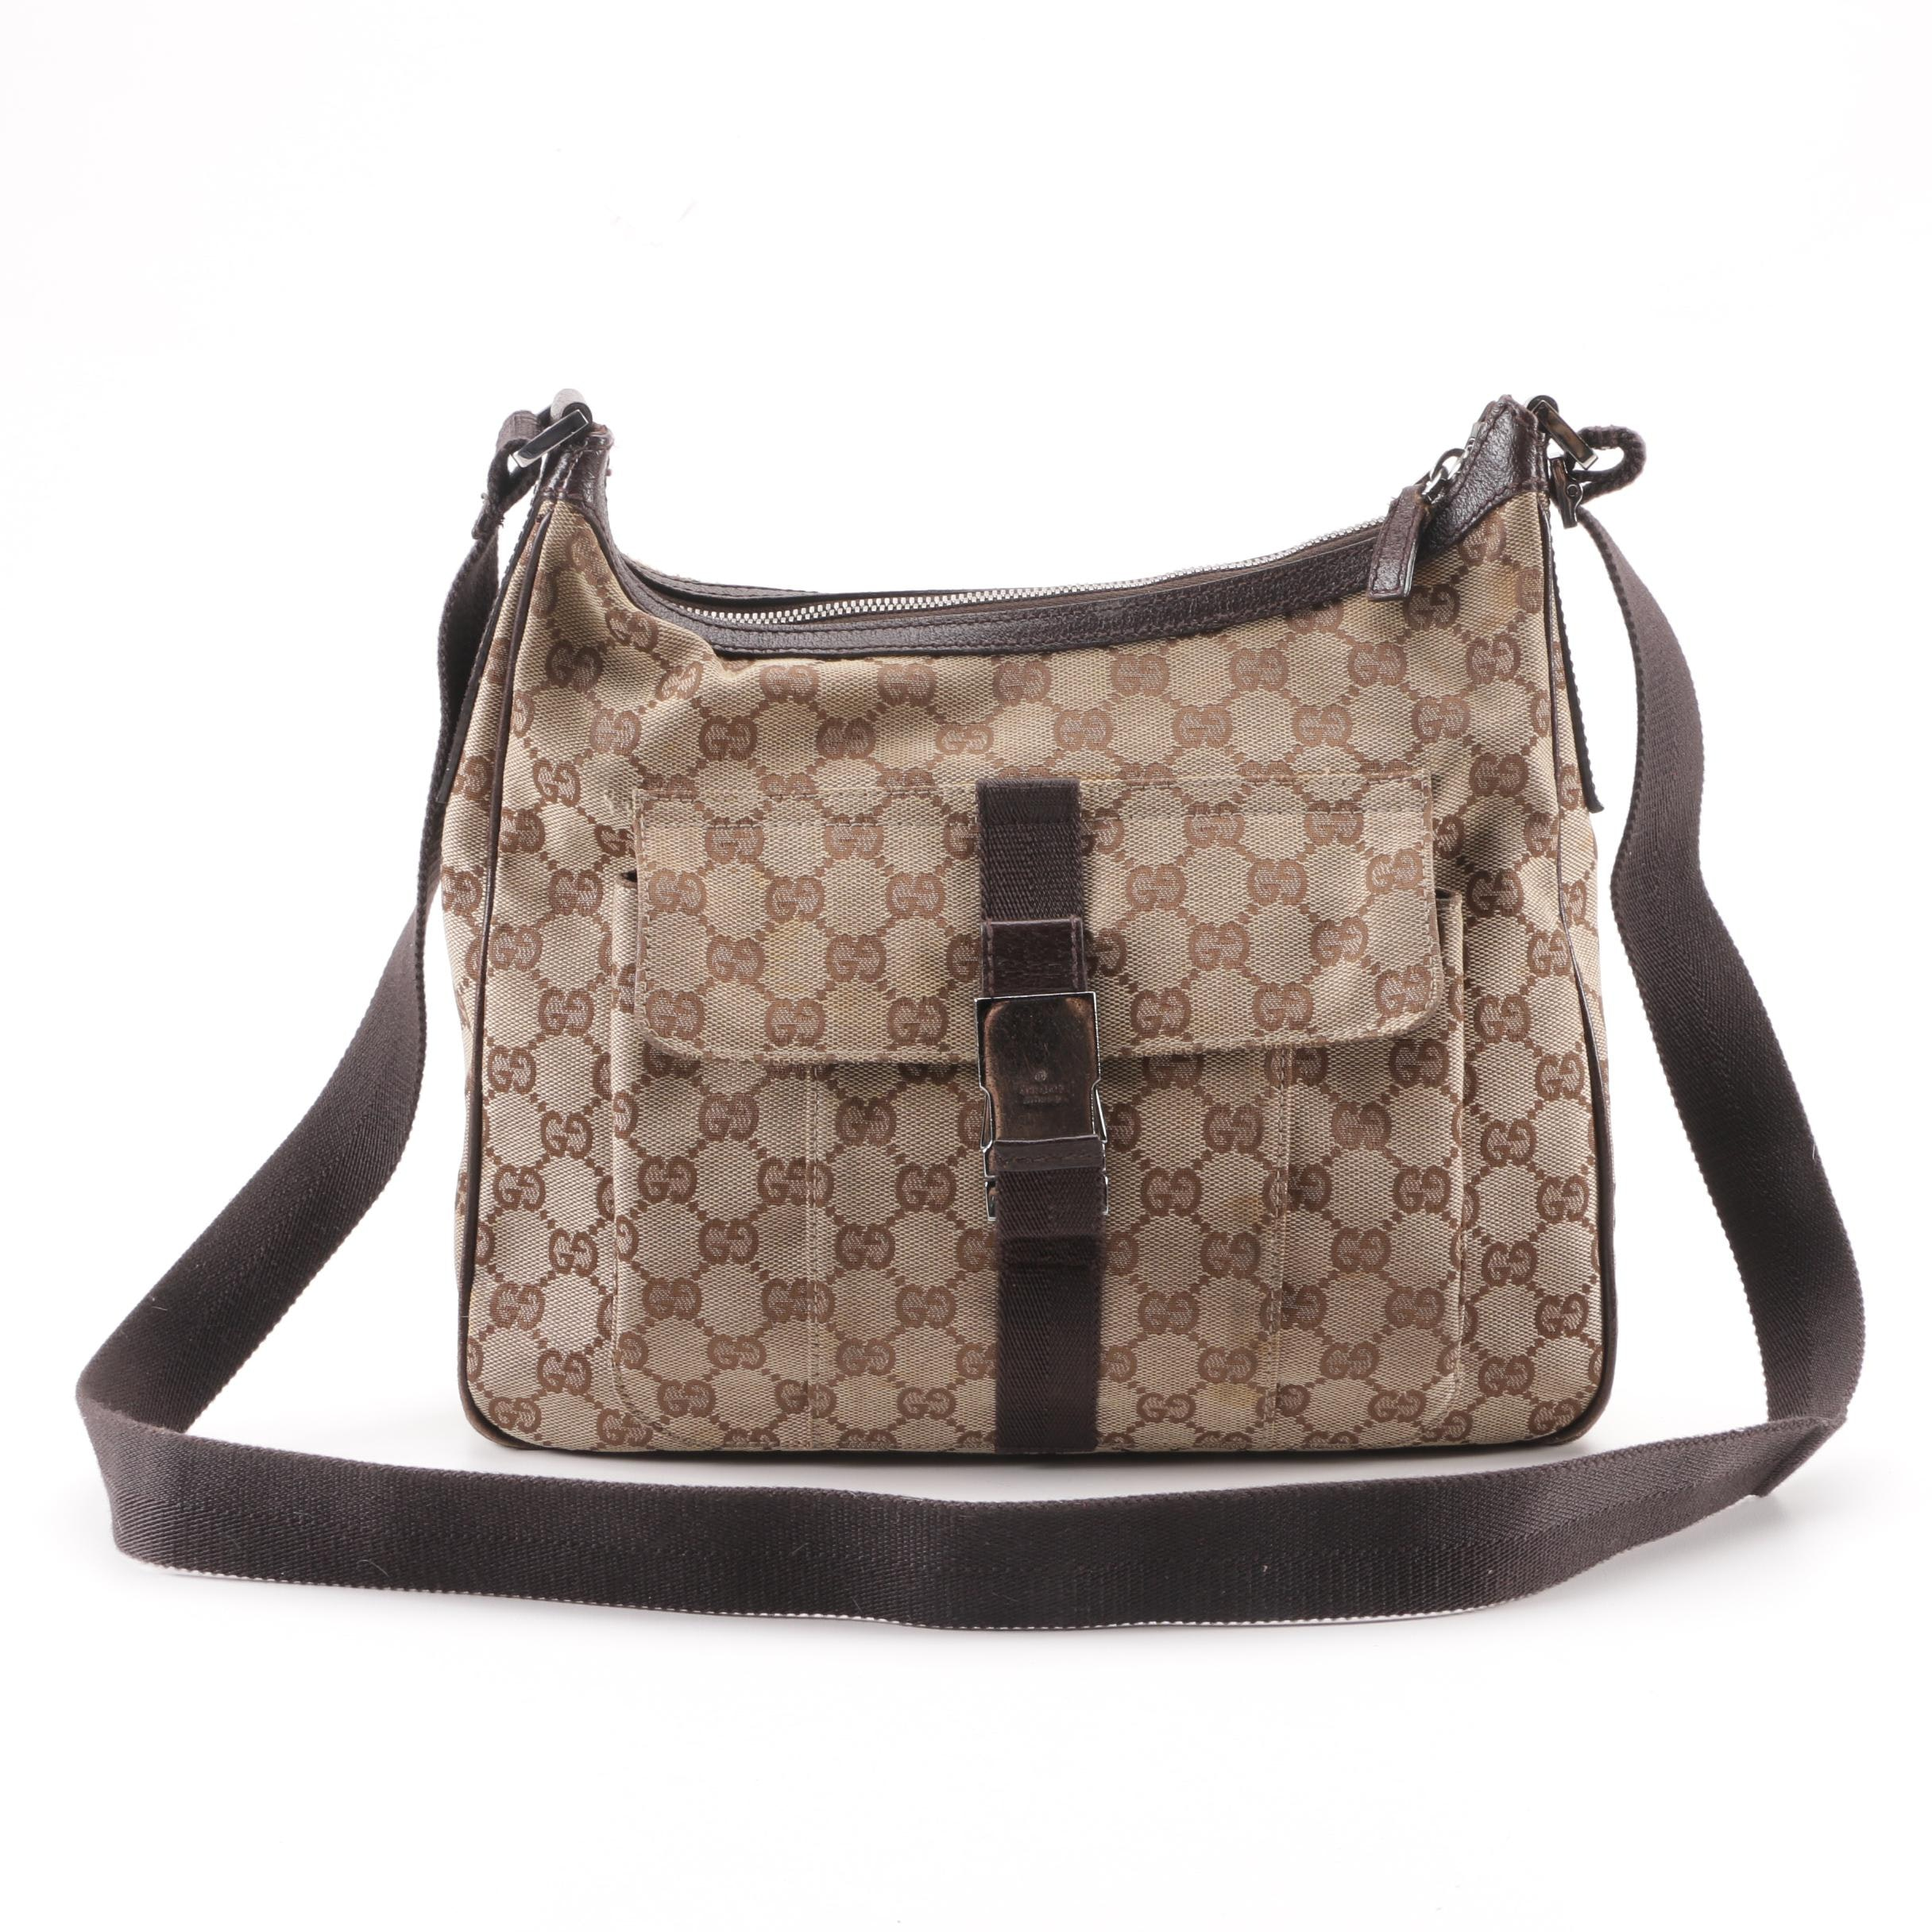 Late 20th Century Gucci GG Canvas Hobo Shoulder Bag